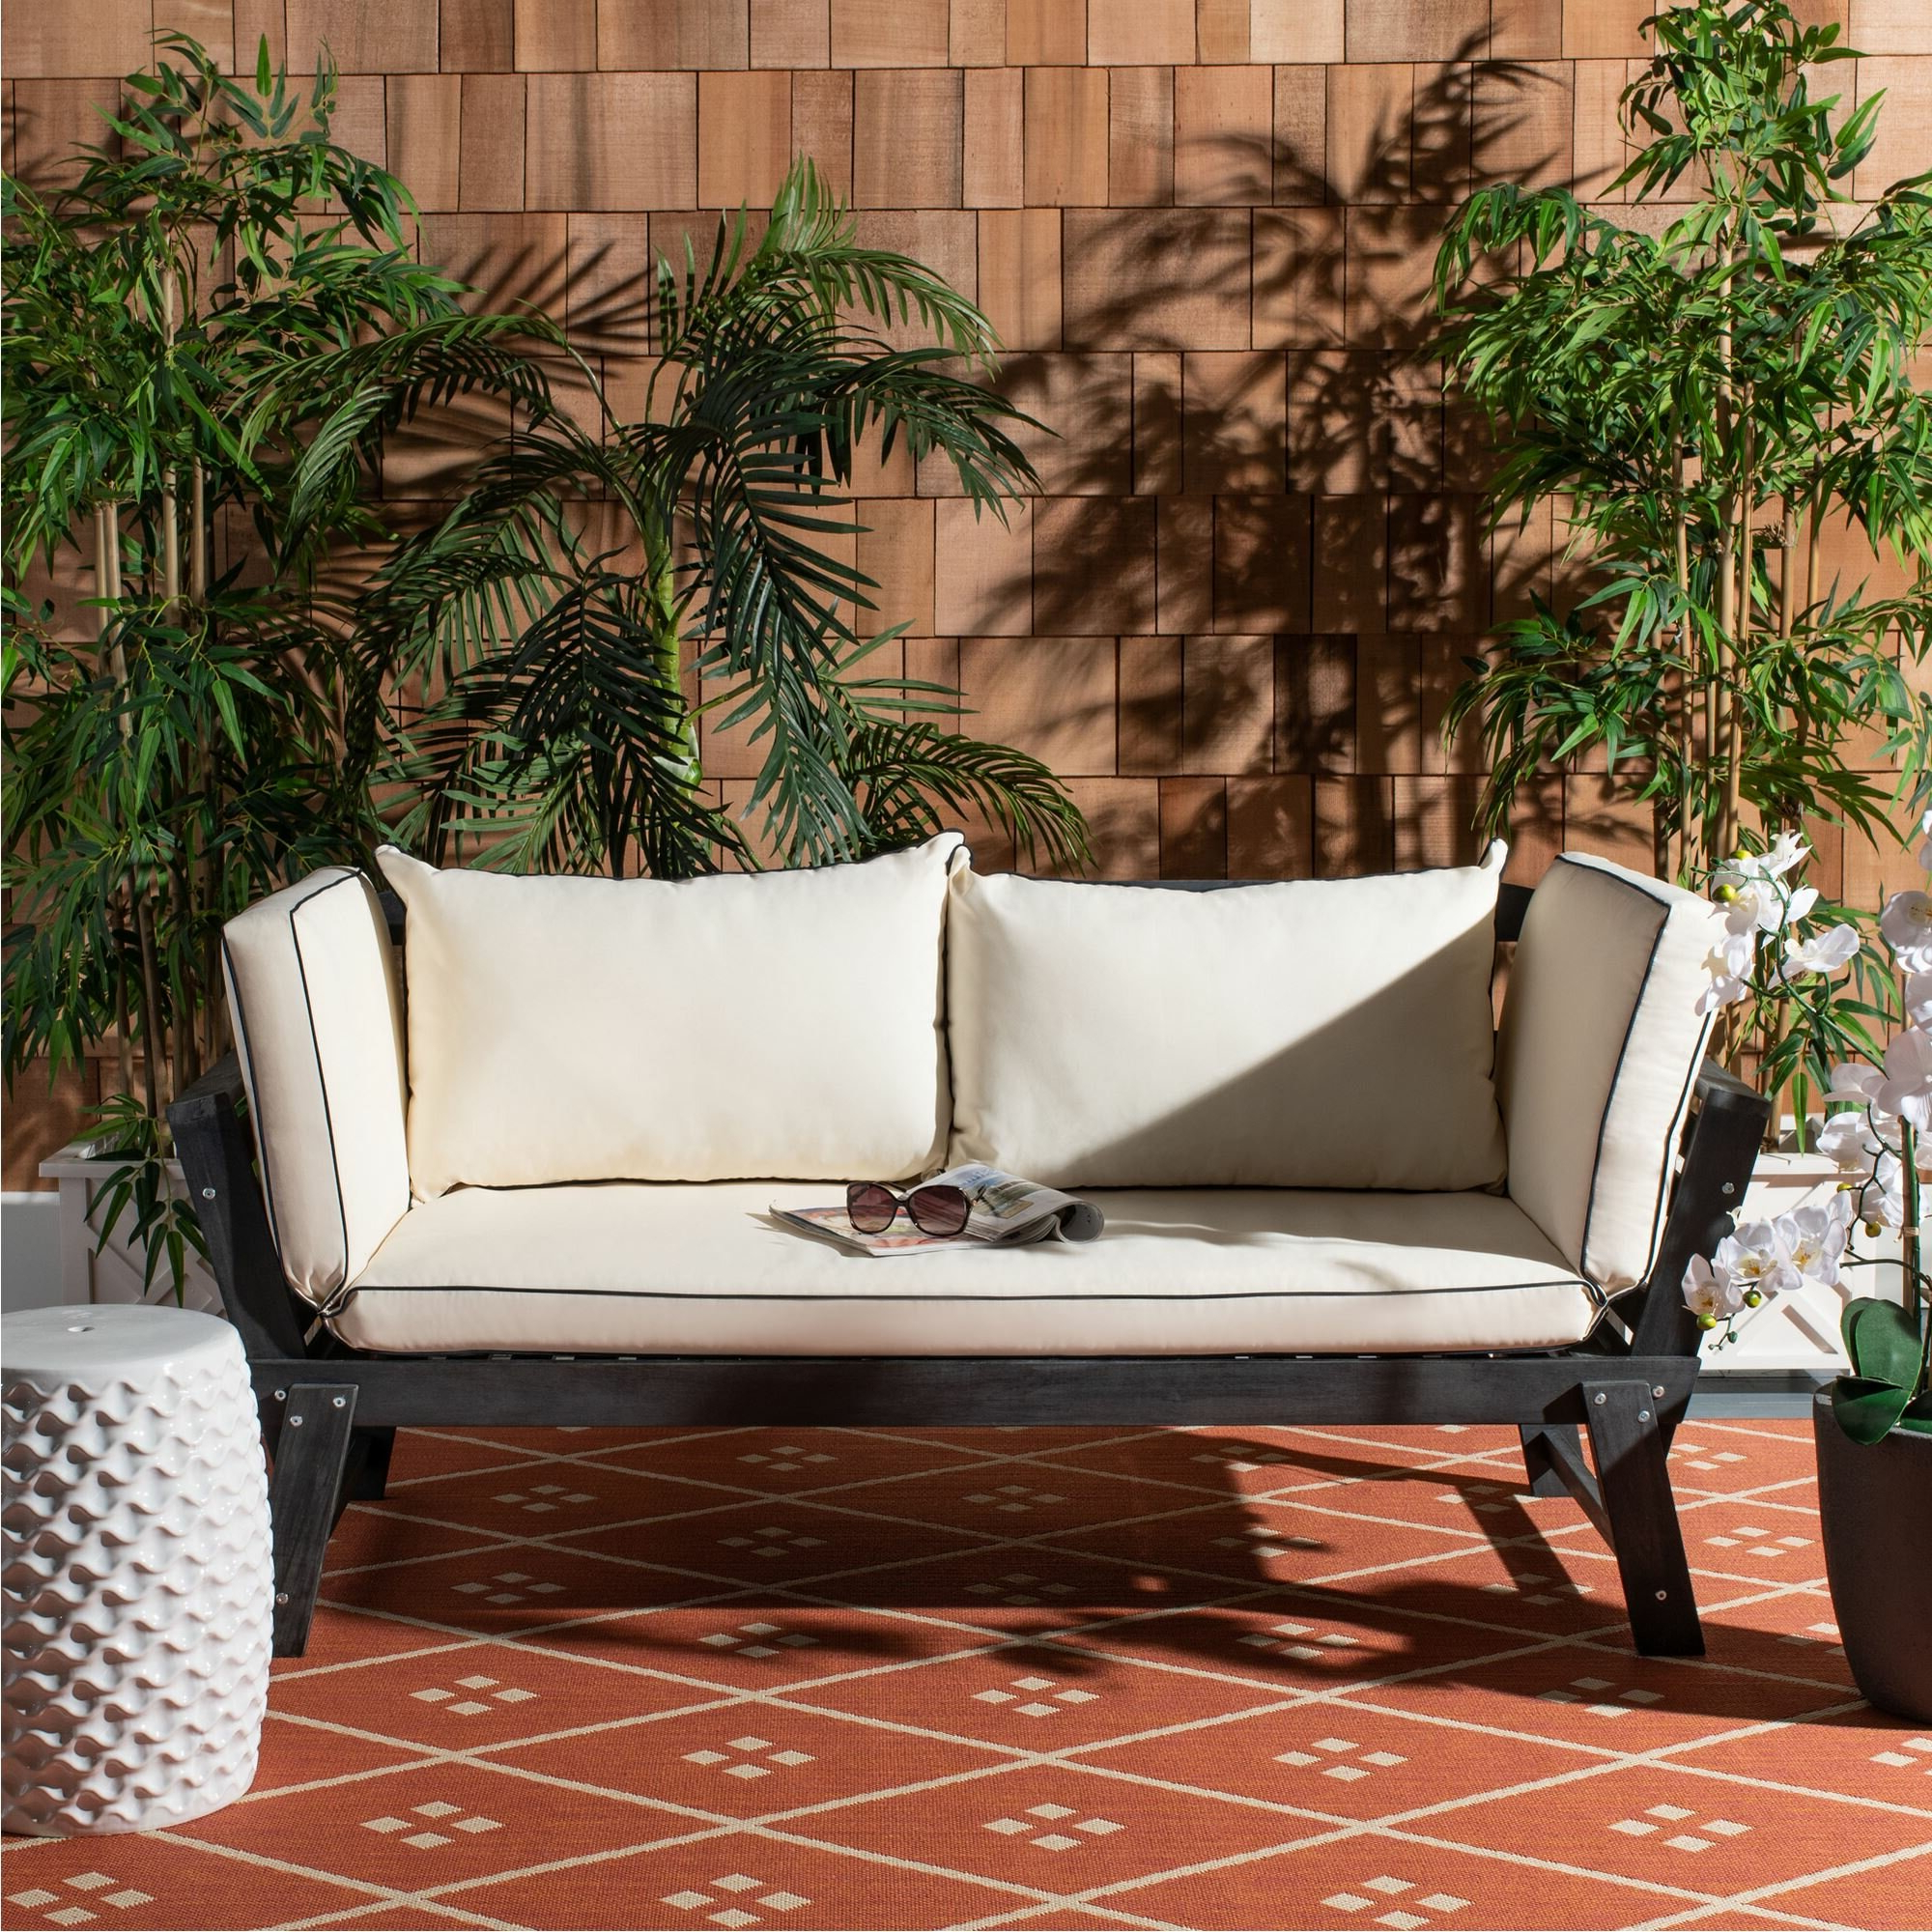 Most Recent Freeport Patio Daybeds With Cushion In Birch Lane™ Heritage Beal Patio Daybed With Cushions (View 11 of 20)